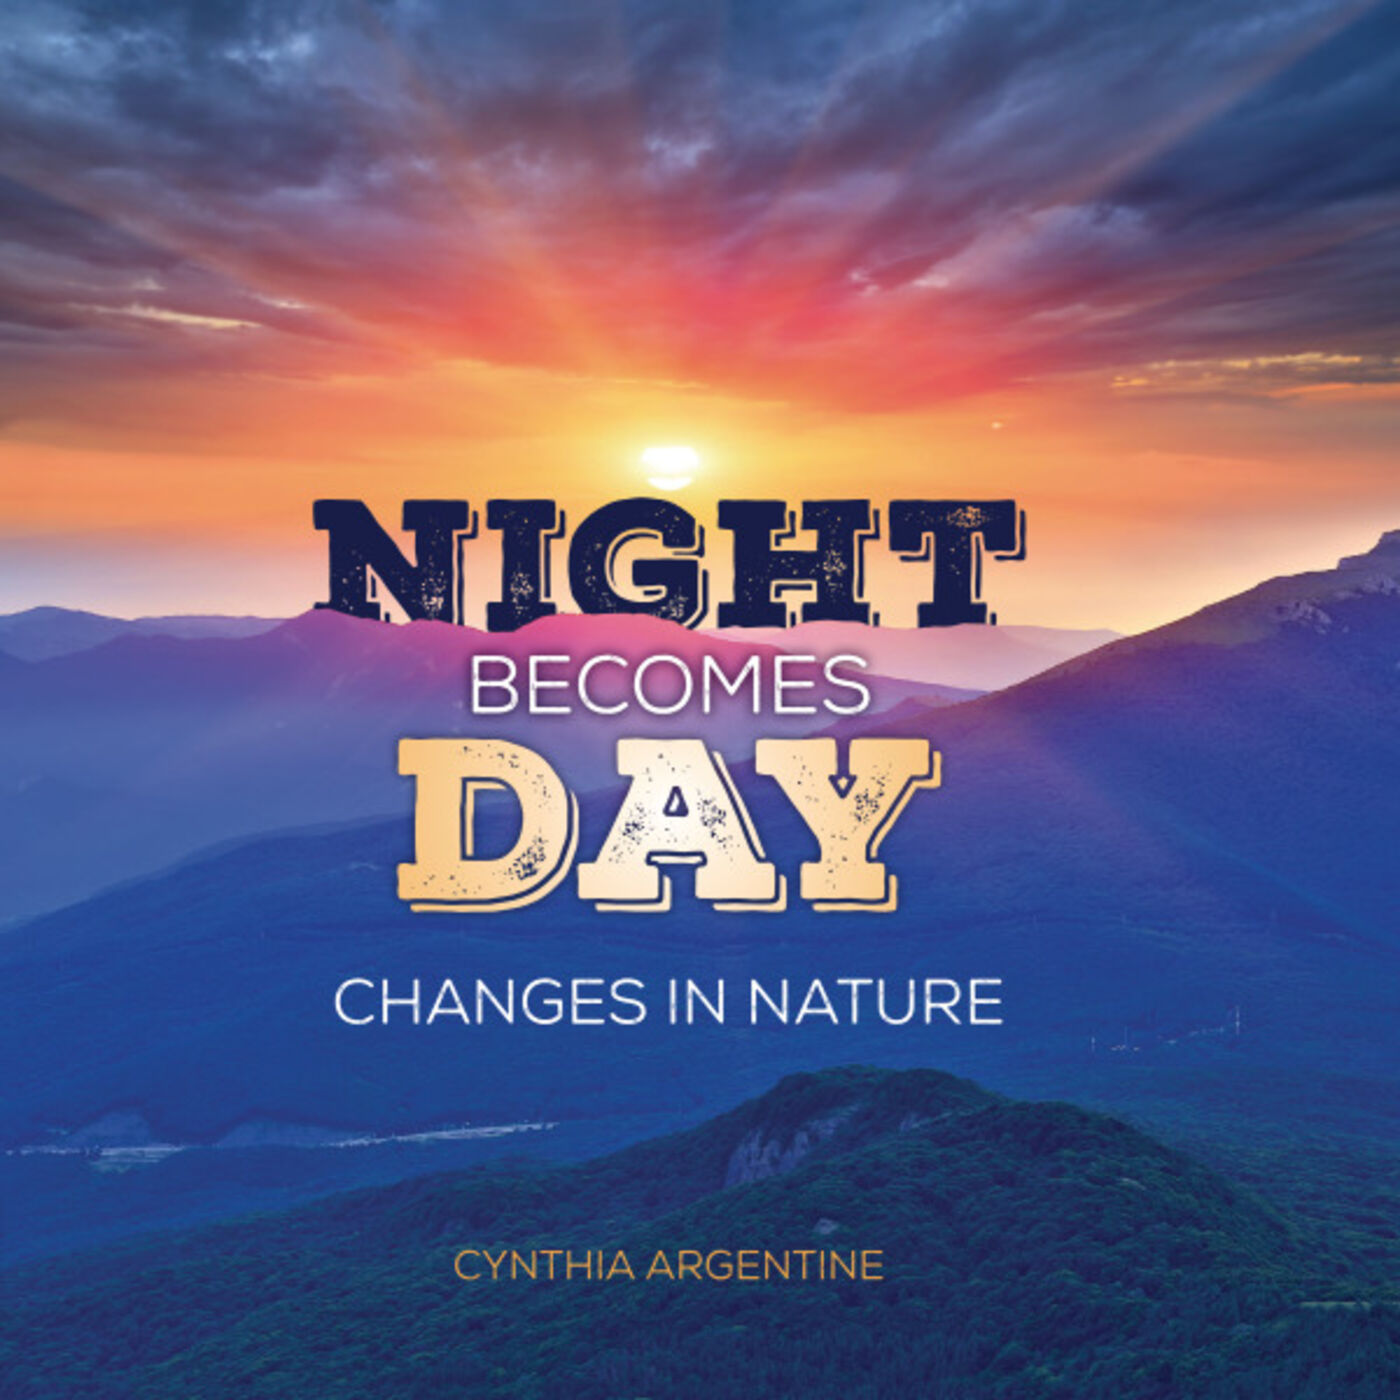 Cynthia Argentine Hopes to Inspire Readers with How Nature Changes in Night Becomes Day